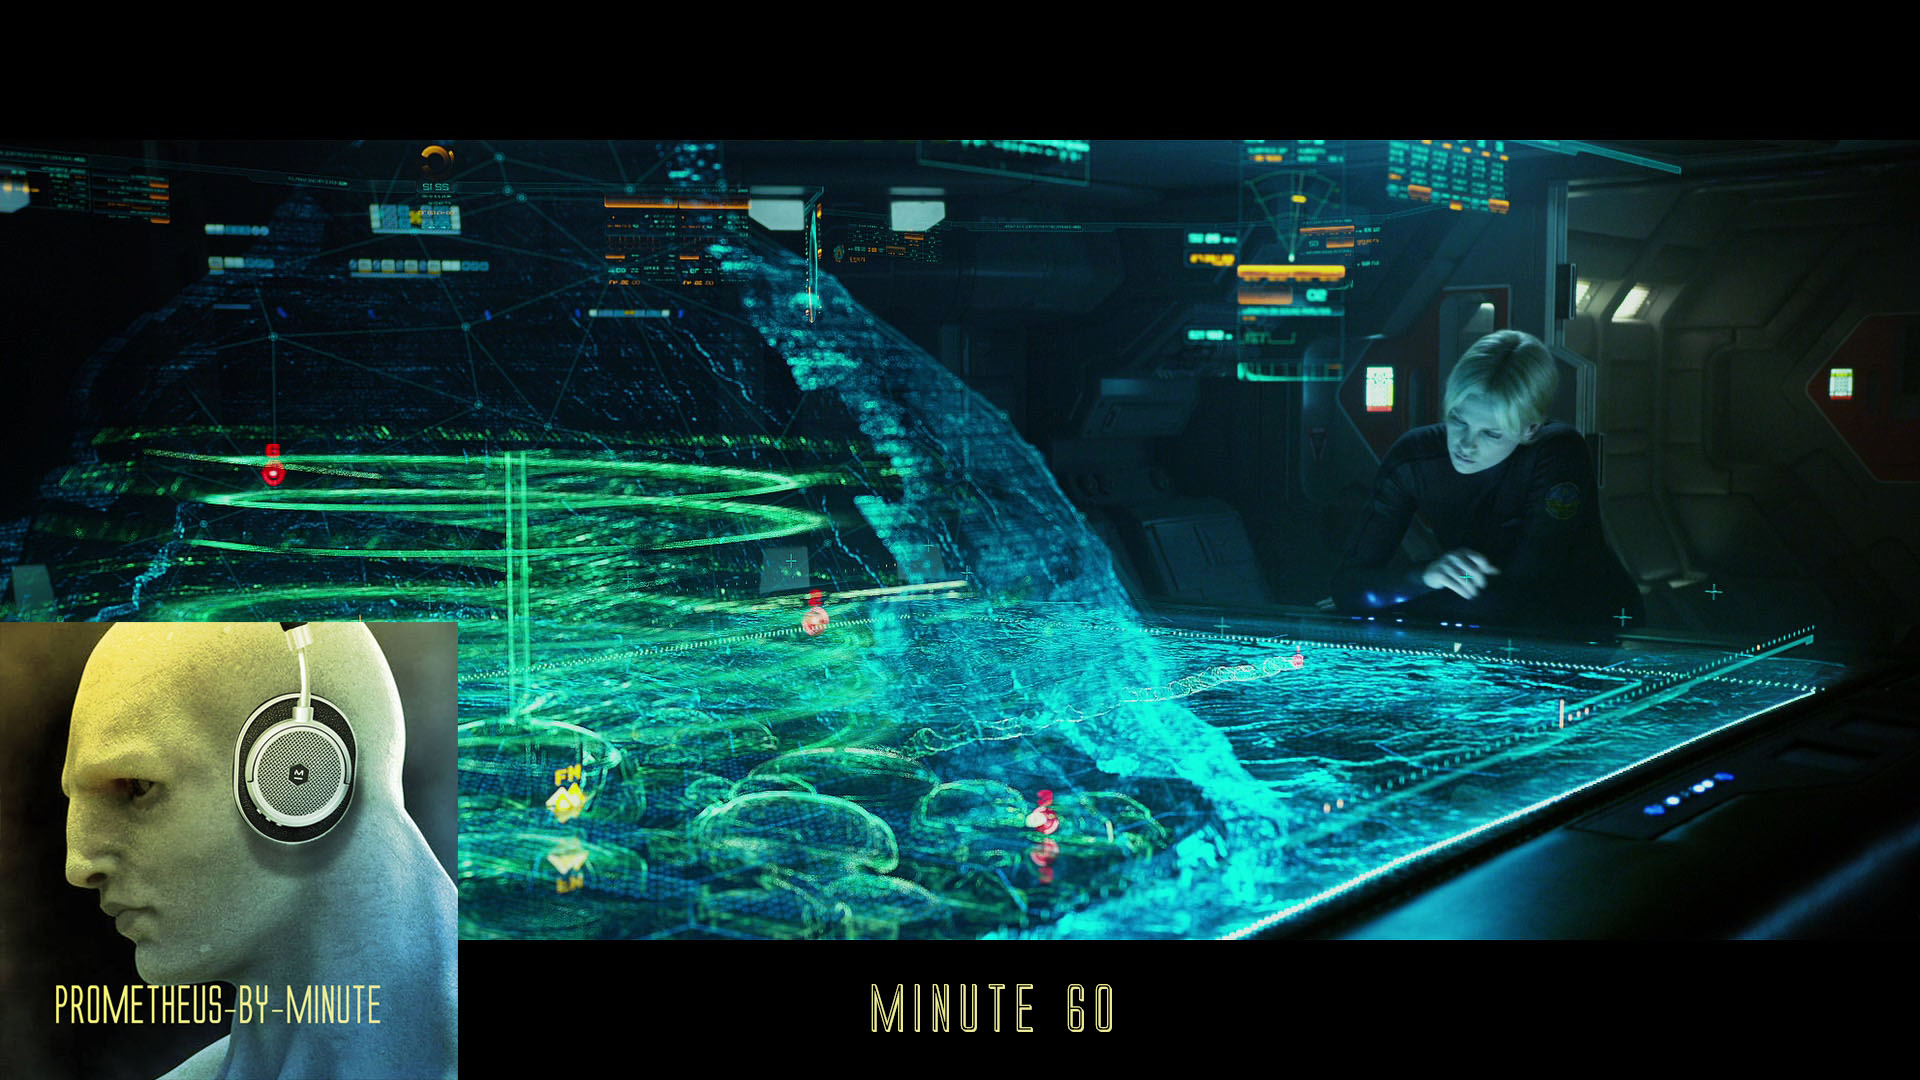 Prometheus-by-Minute 60 – Travian Designs